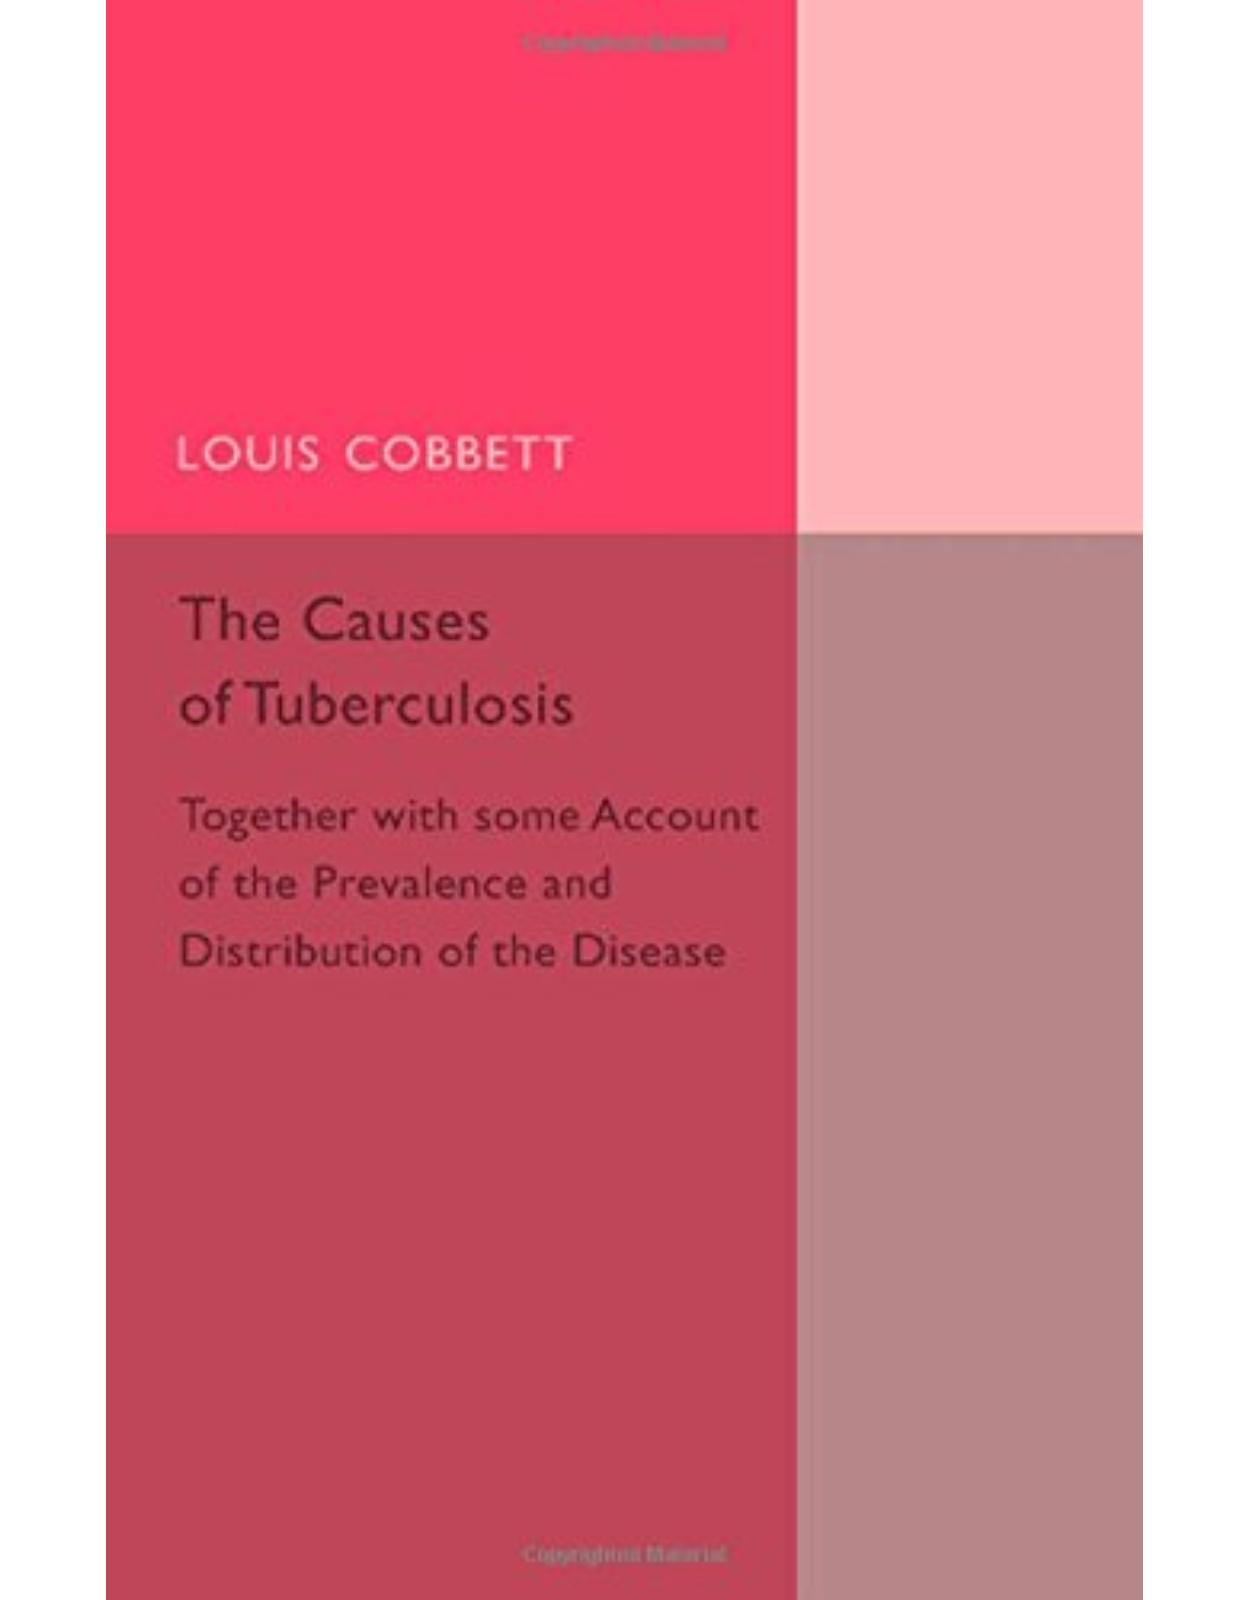 The Causes of Tuberculosis: Together with Some Account of the Prevalence and Distribution of the Disease